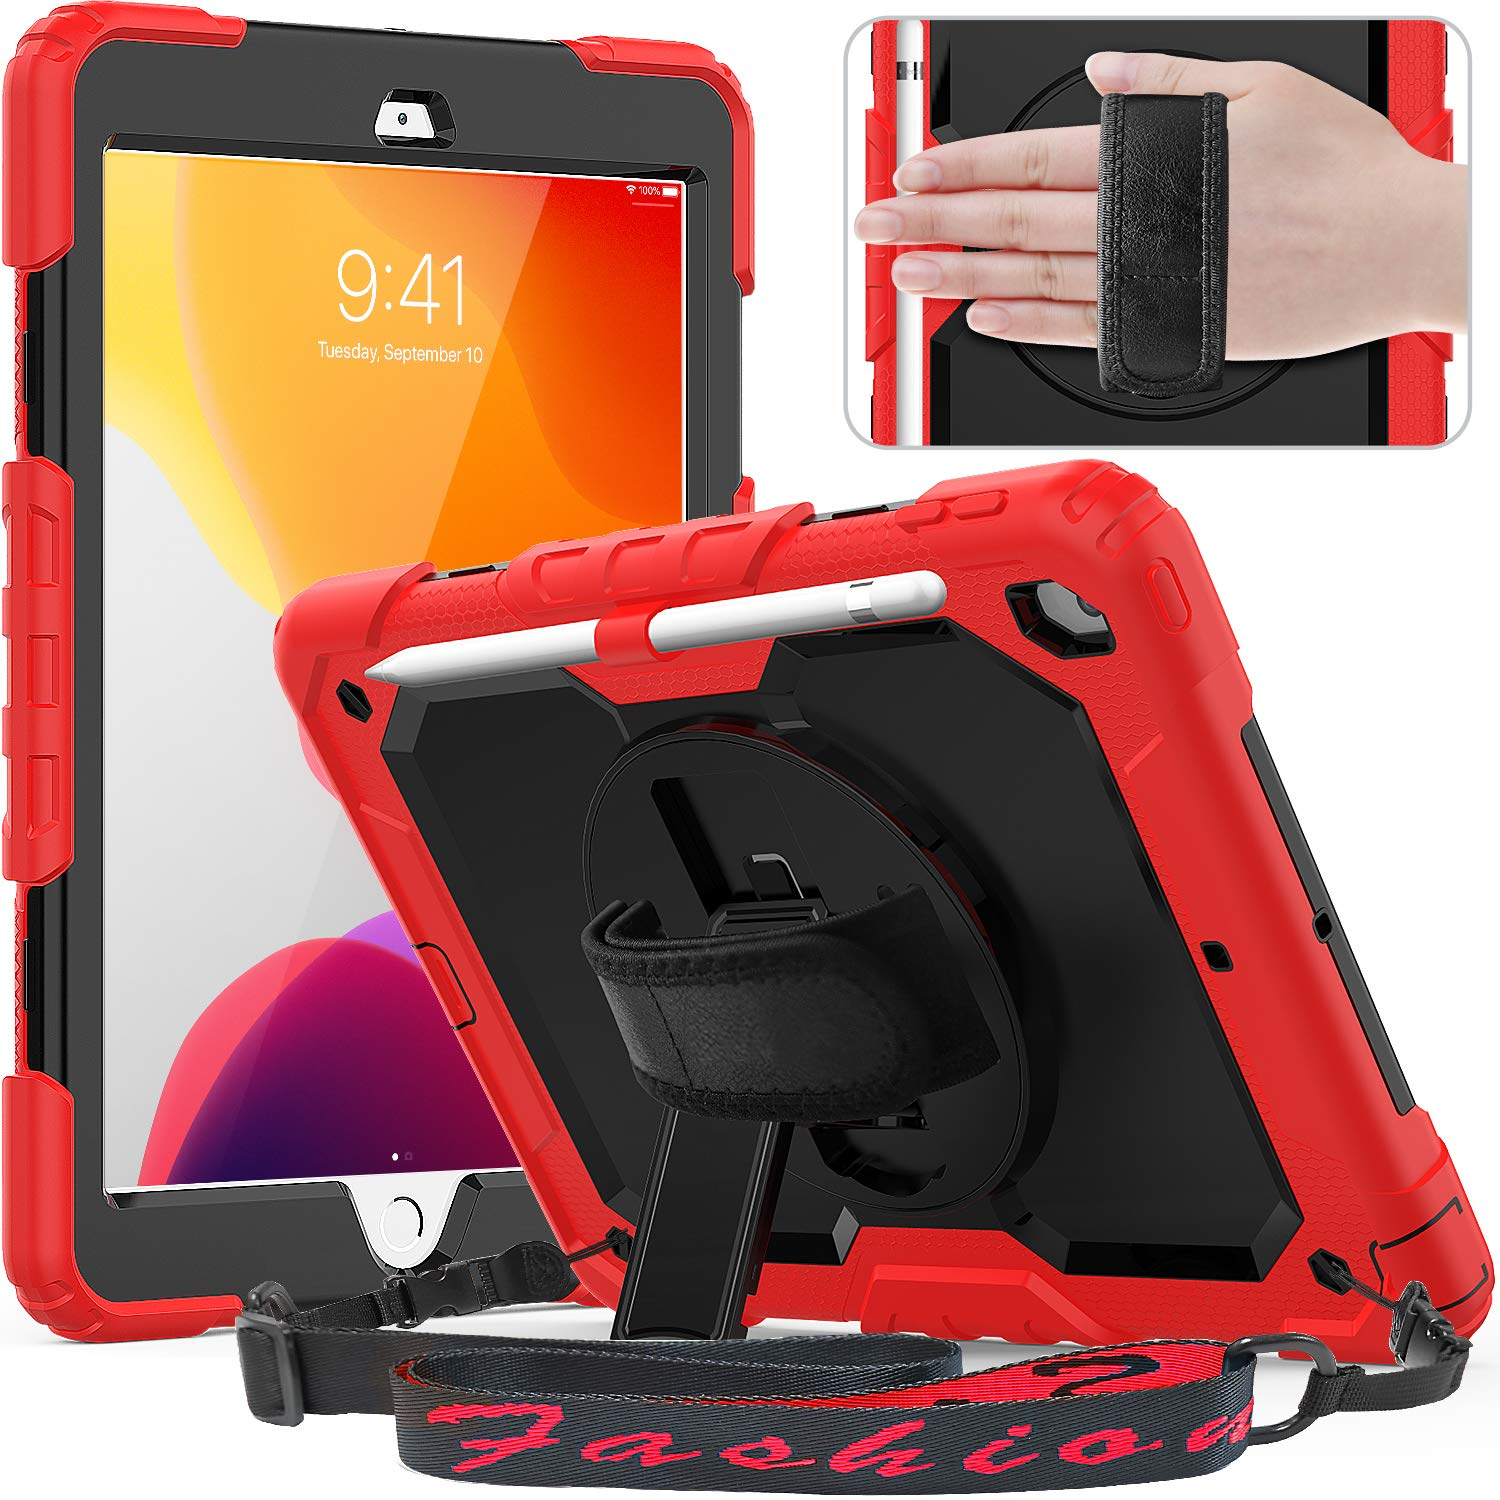 timecity iPad 10.2 Case, 2019 iPad 7th Generation Case with Screen Protector Pencil Holder, 360° Rotatable Kickstand with Hand Strap Shoulder Strap, Shockproof Anti Scratch iPad 7th Gen Case, Red